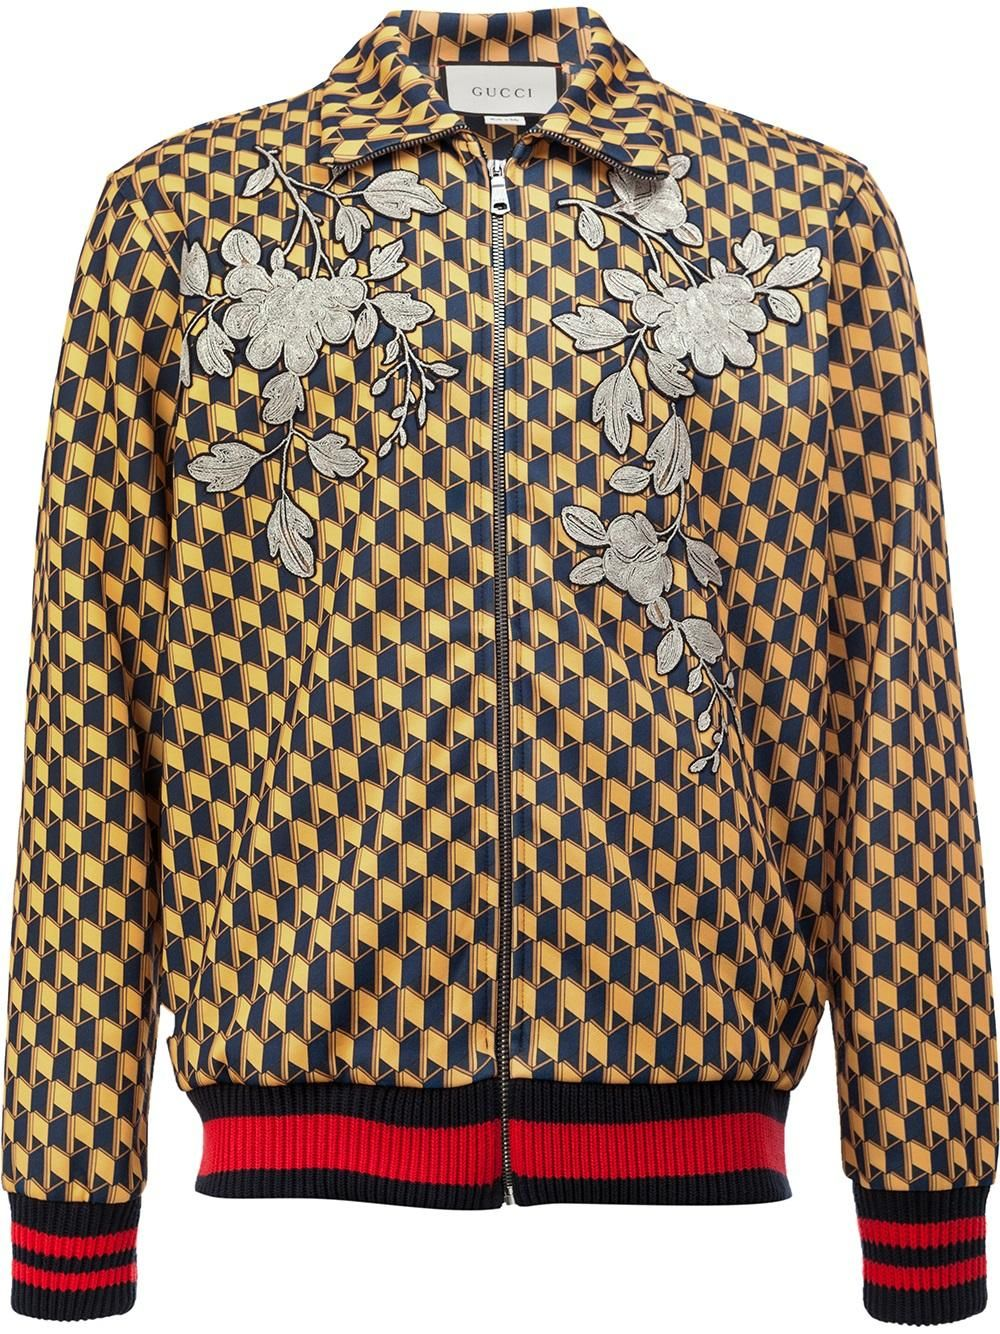 907f43d2 Gucci embroidered geometric bomber jacket | Gucci Dreams in 2019 ...